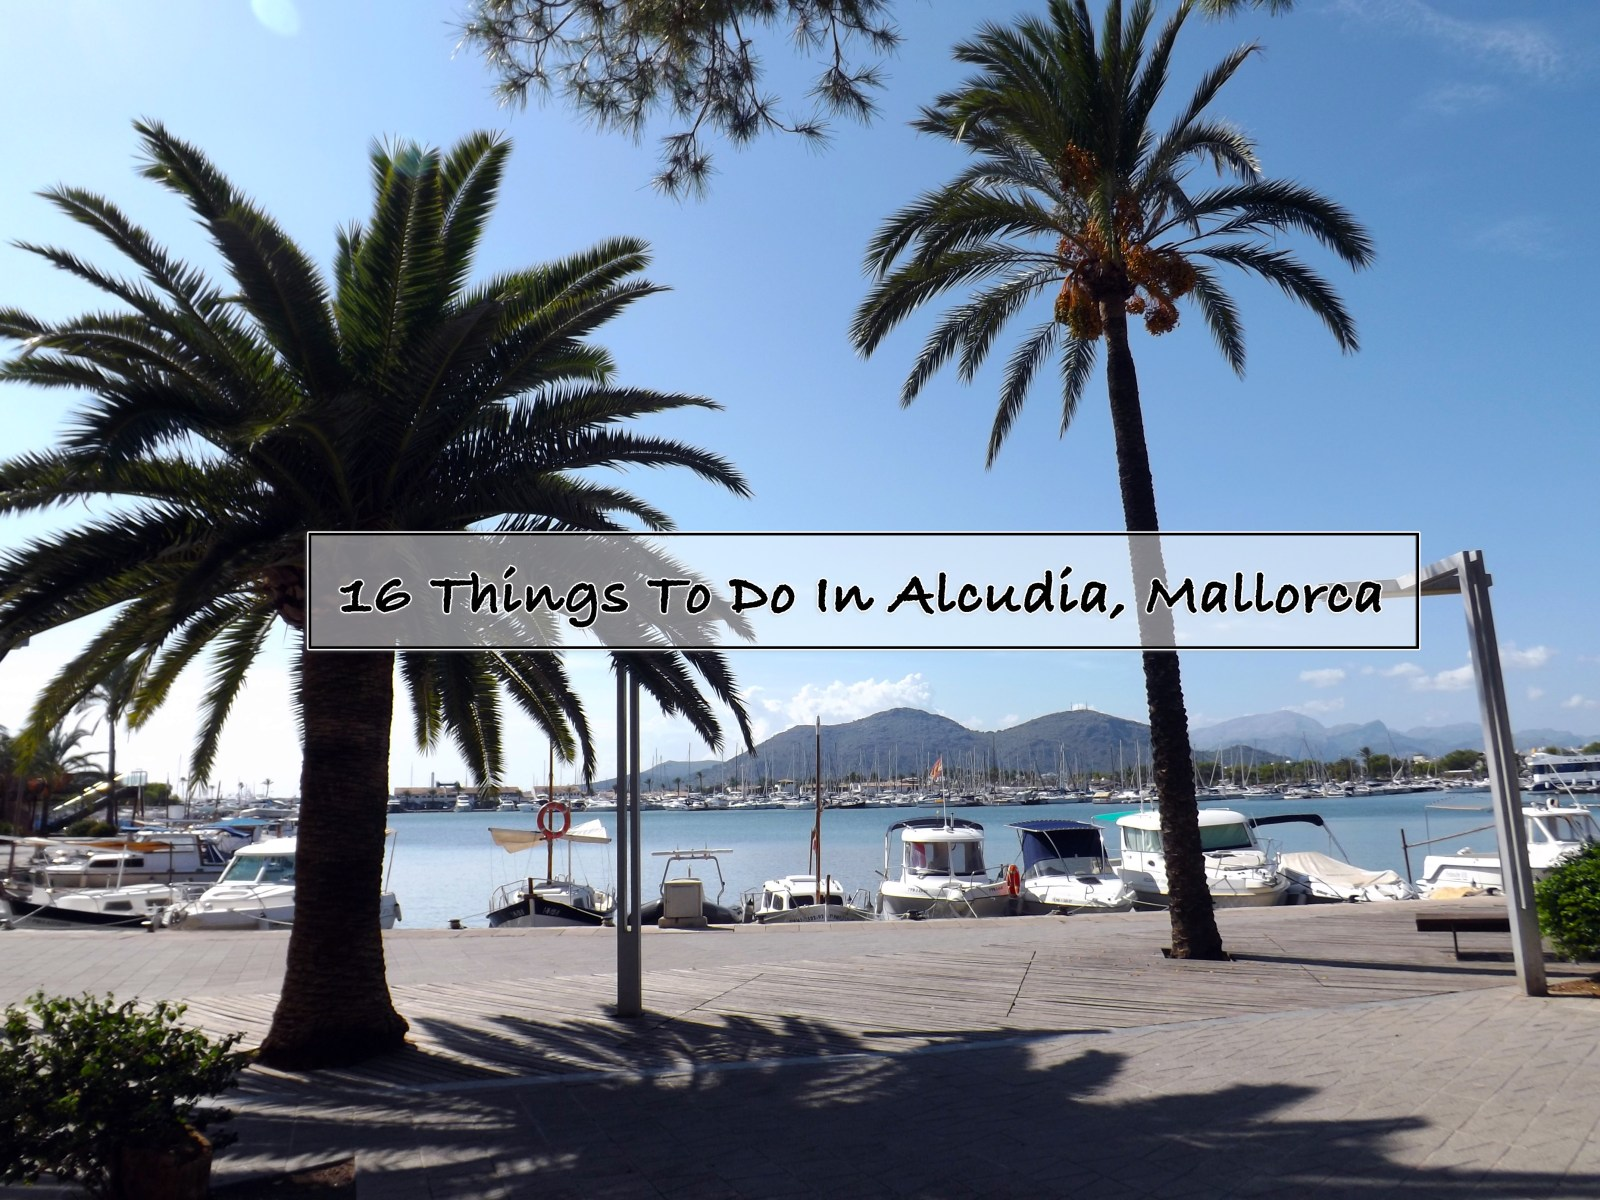 16 Things to do in Alcudia, Mallorca Blog Post - one Epic Road Trip Blog